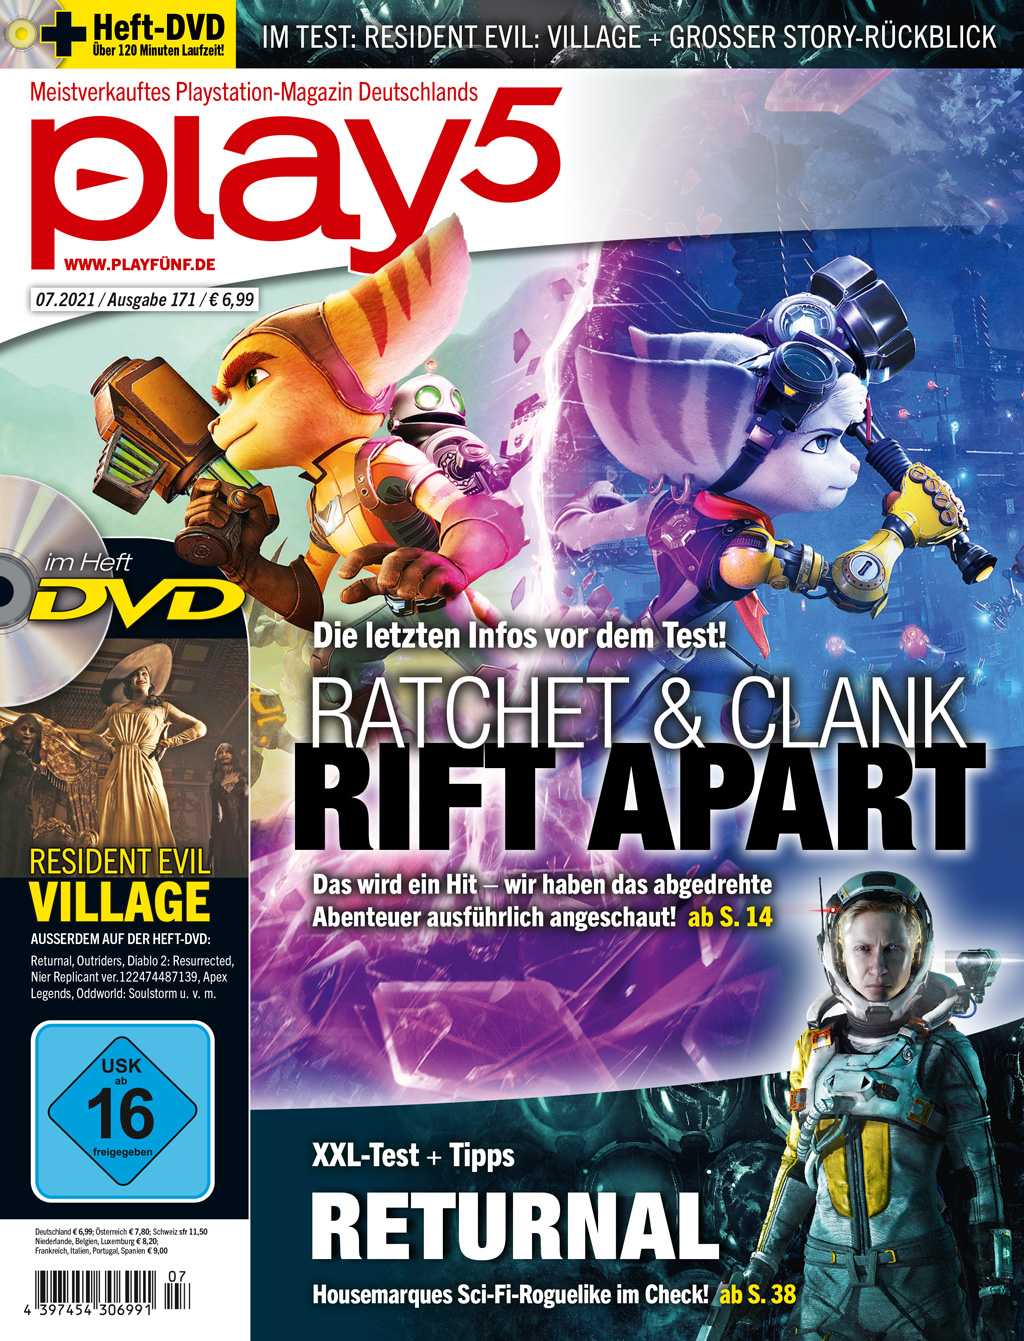 play5 07/21 with Ratchet & Clank: Rift Apart, Returnal and more!